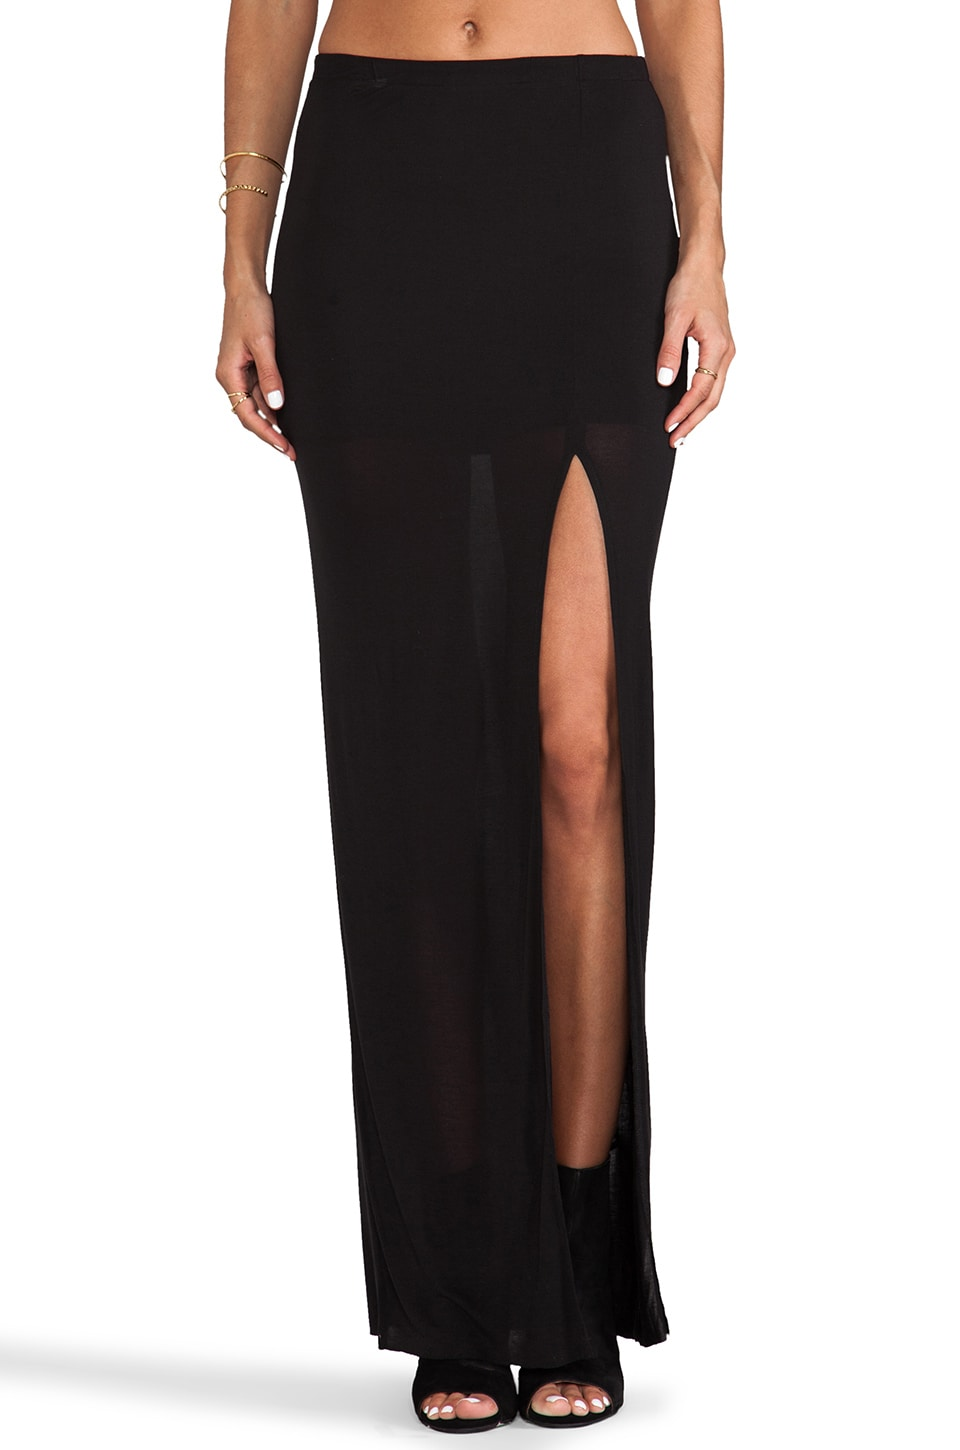 Bella Luxx Column Skirt in Black